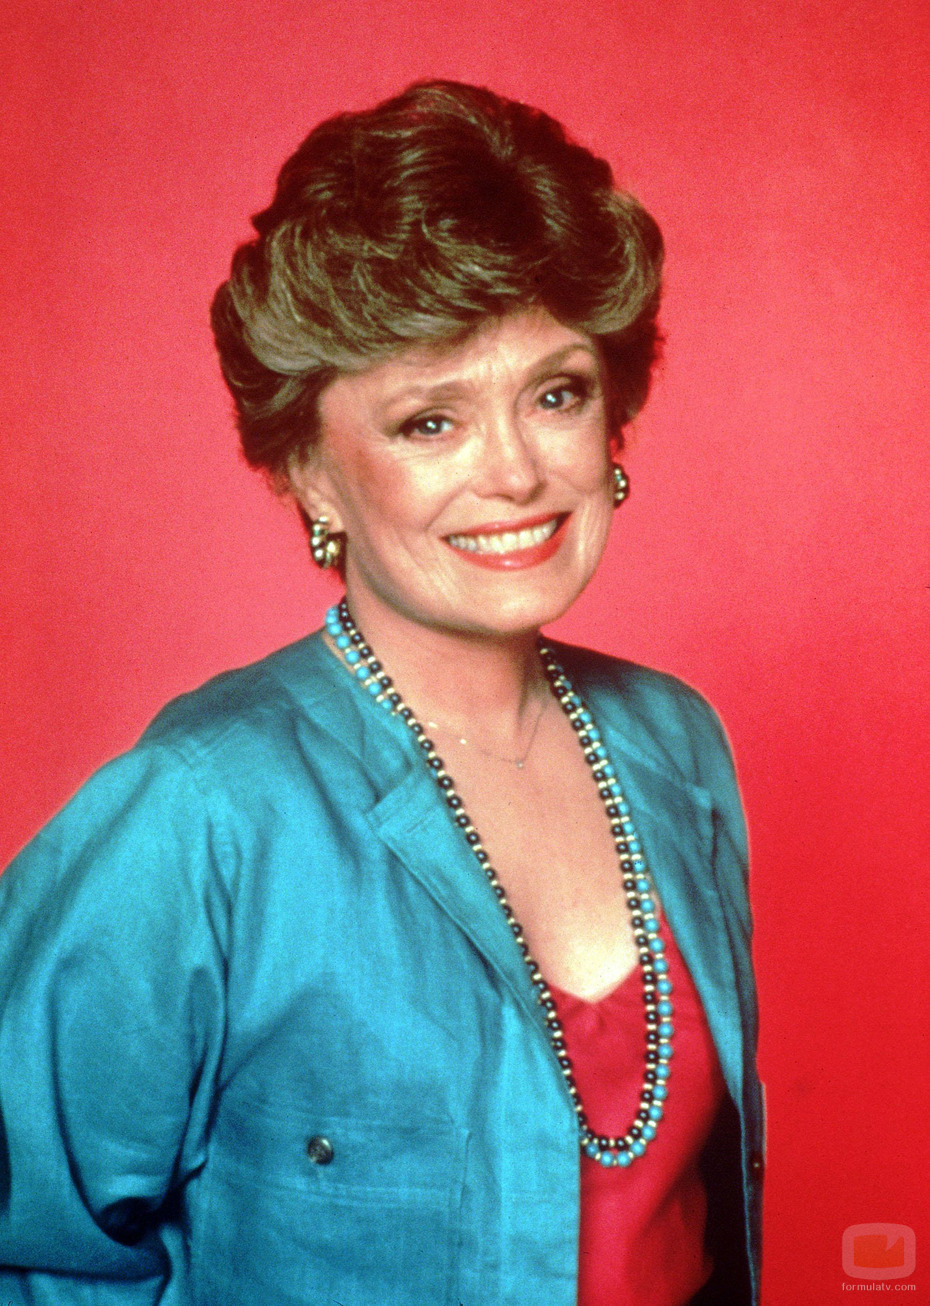 Discussion on this topic: Susan Haskell, rue-mcclanahan/